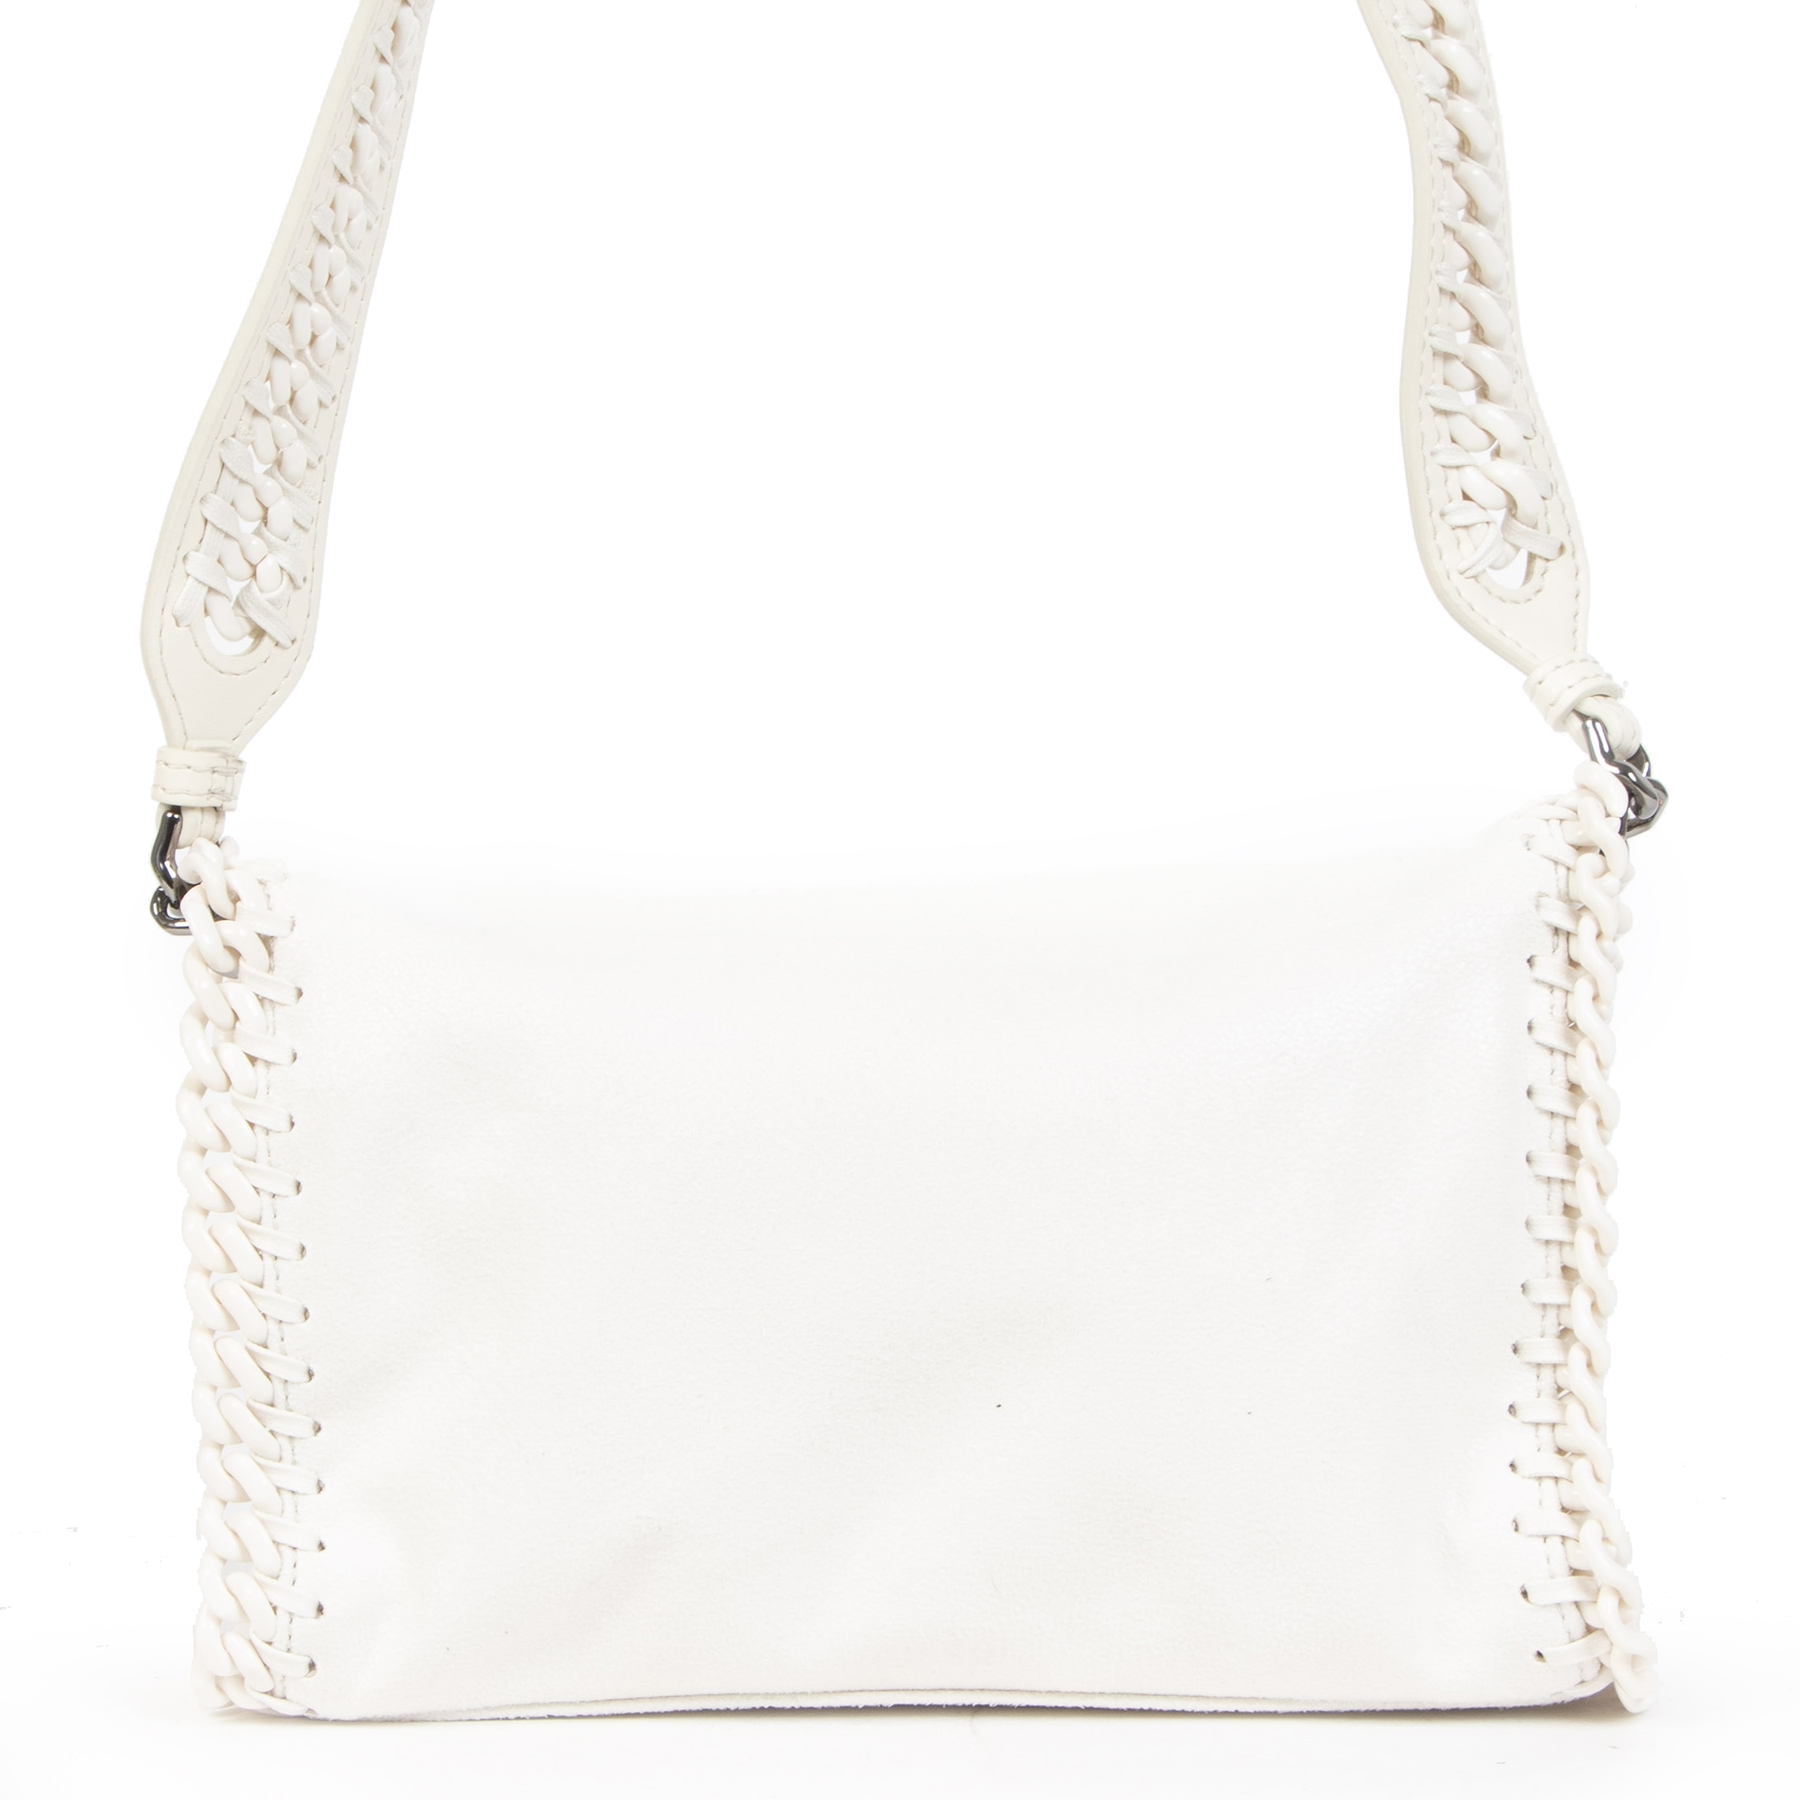 Buy authentic secondhand Stella McCartney White Falabella Candy Mini shoulder bag at the right price at LabelLOV vintage webshop. Safe and secure online shopping. Koop authentieke tweedehands Stella McCartney White Falabella Candy Mini shoulder bag met de